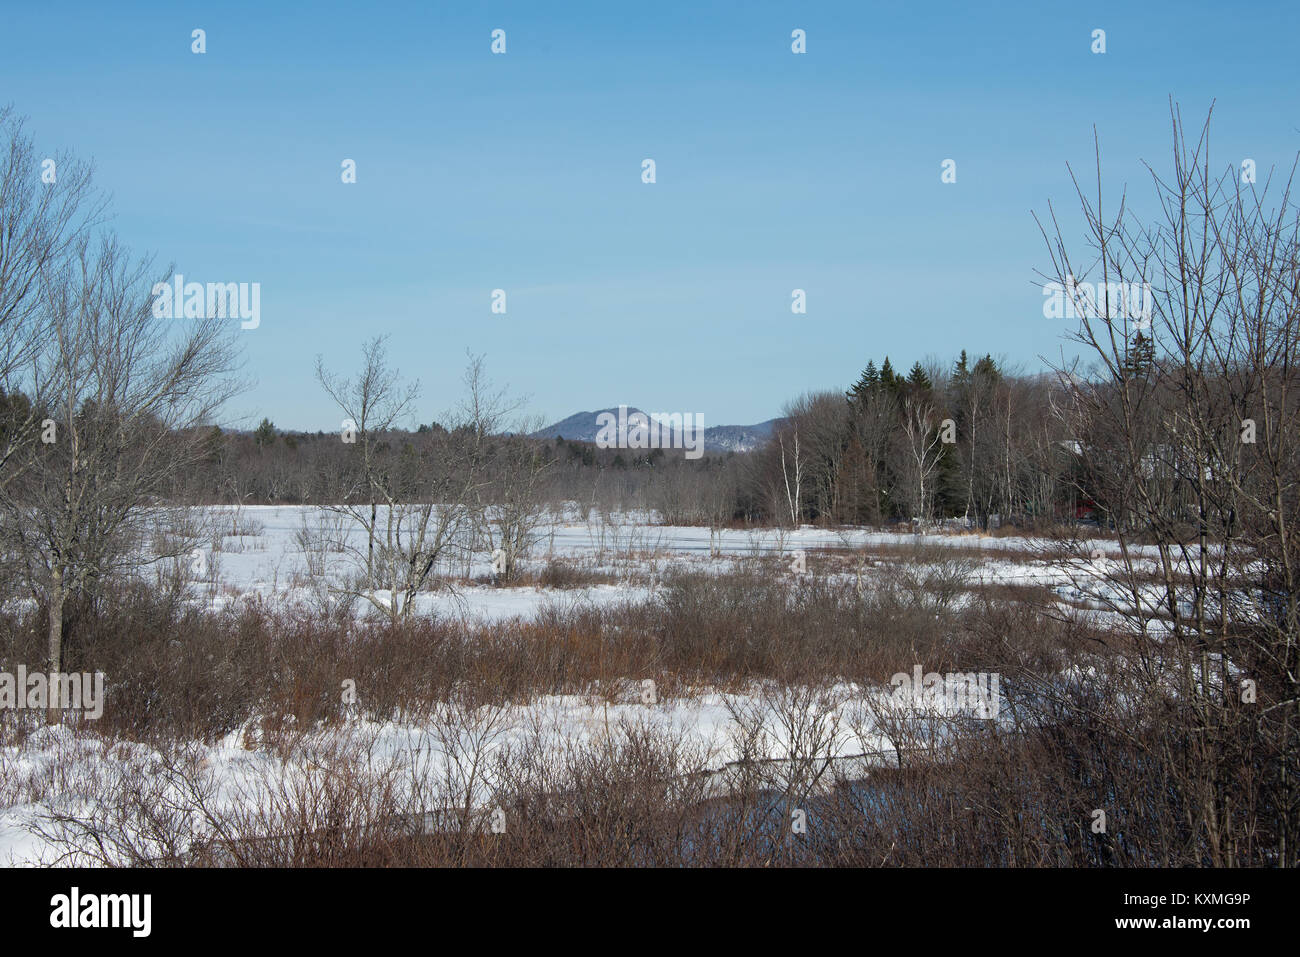 Snow and ice winter view of the Sacandaga River Valley in the Adirondack Mountains, New York, USA - Stock Image